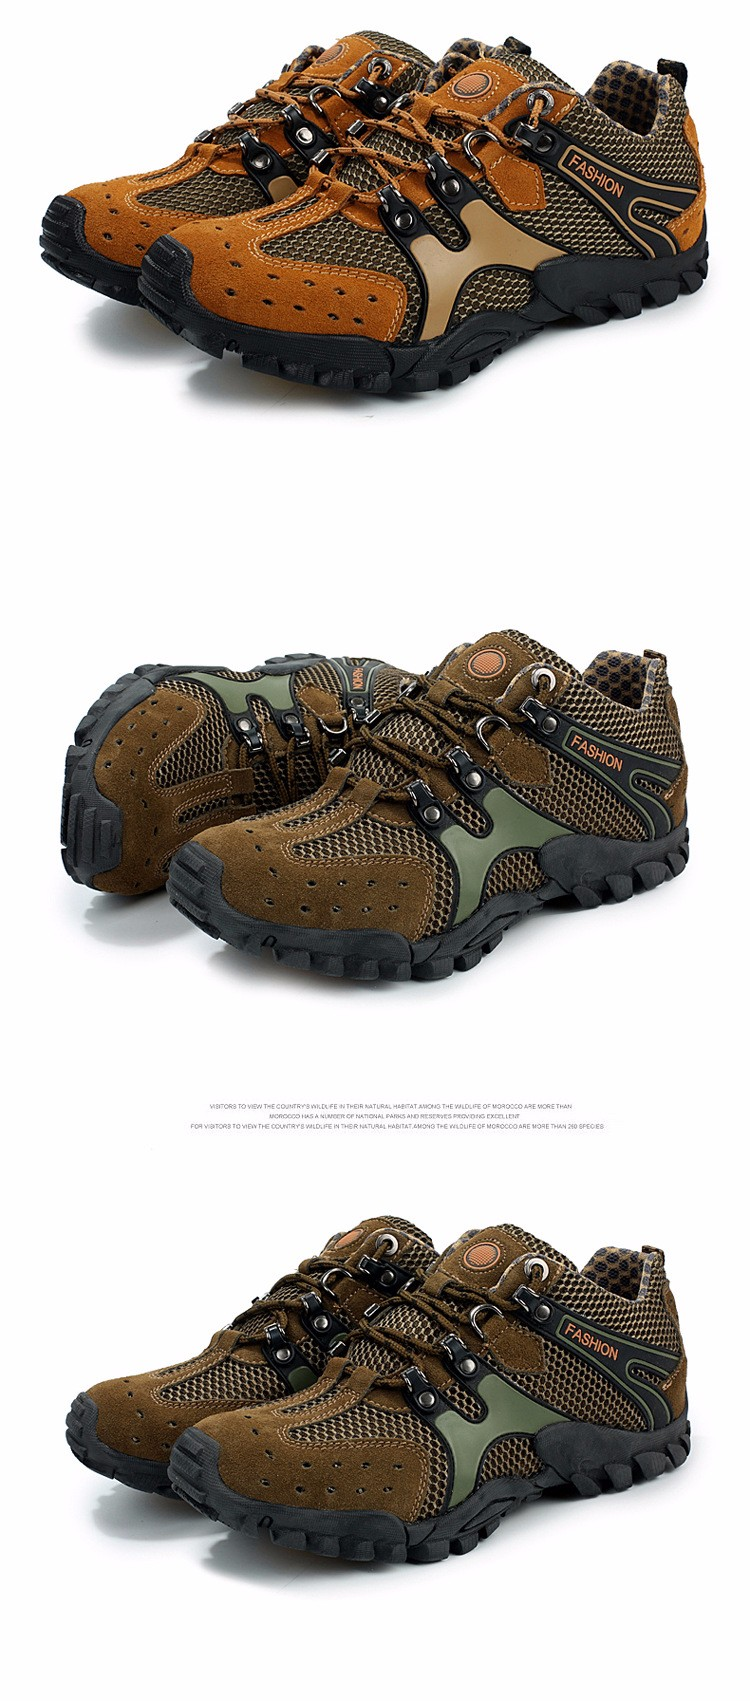 Outdoor Breathable Shoes Men Lightweight Walking Climbing Shoes Anti-skid Men Aqua Water Trekking Shoes Men (22)